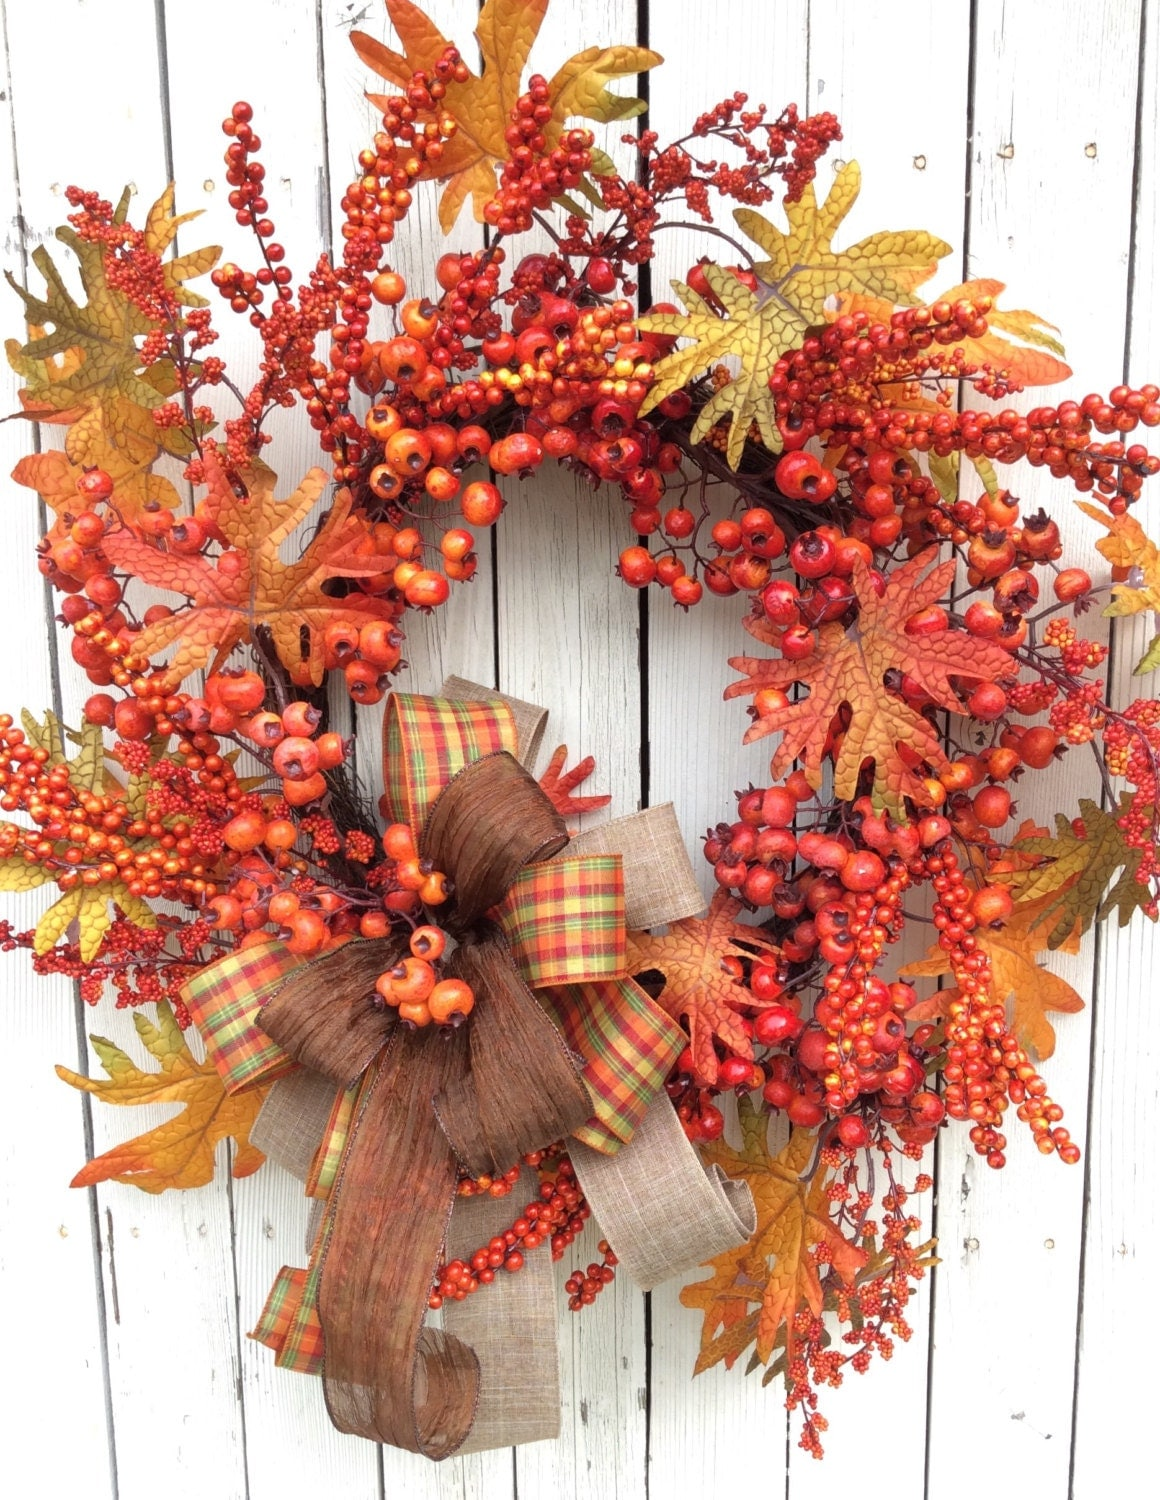 Fall berry wreaththanksgiving wreath back door fall wreath Fall autumn door wreaths